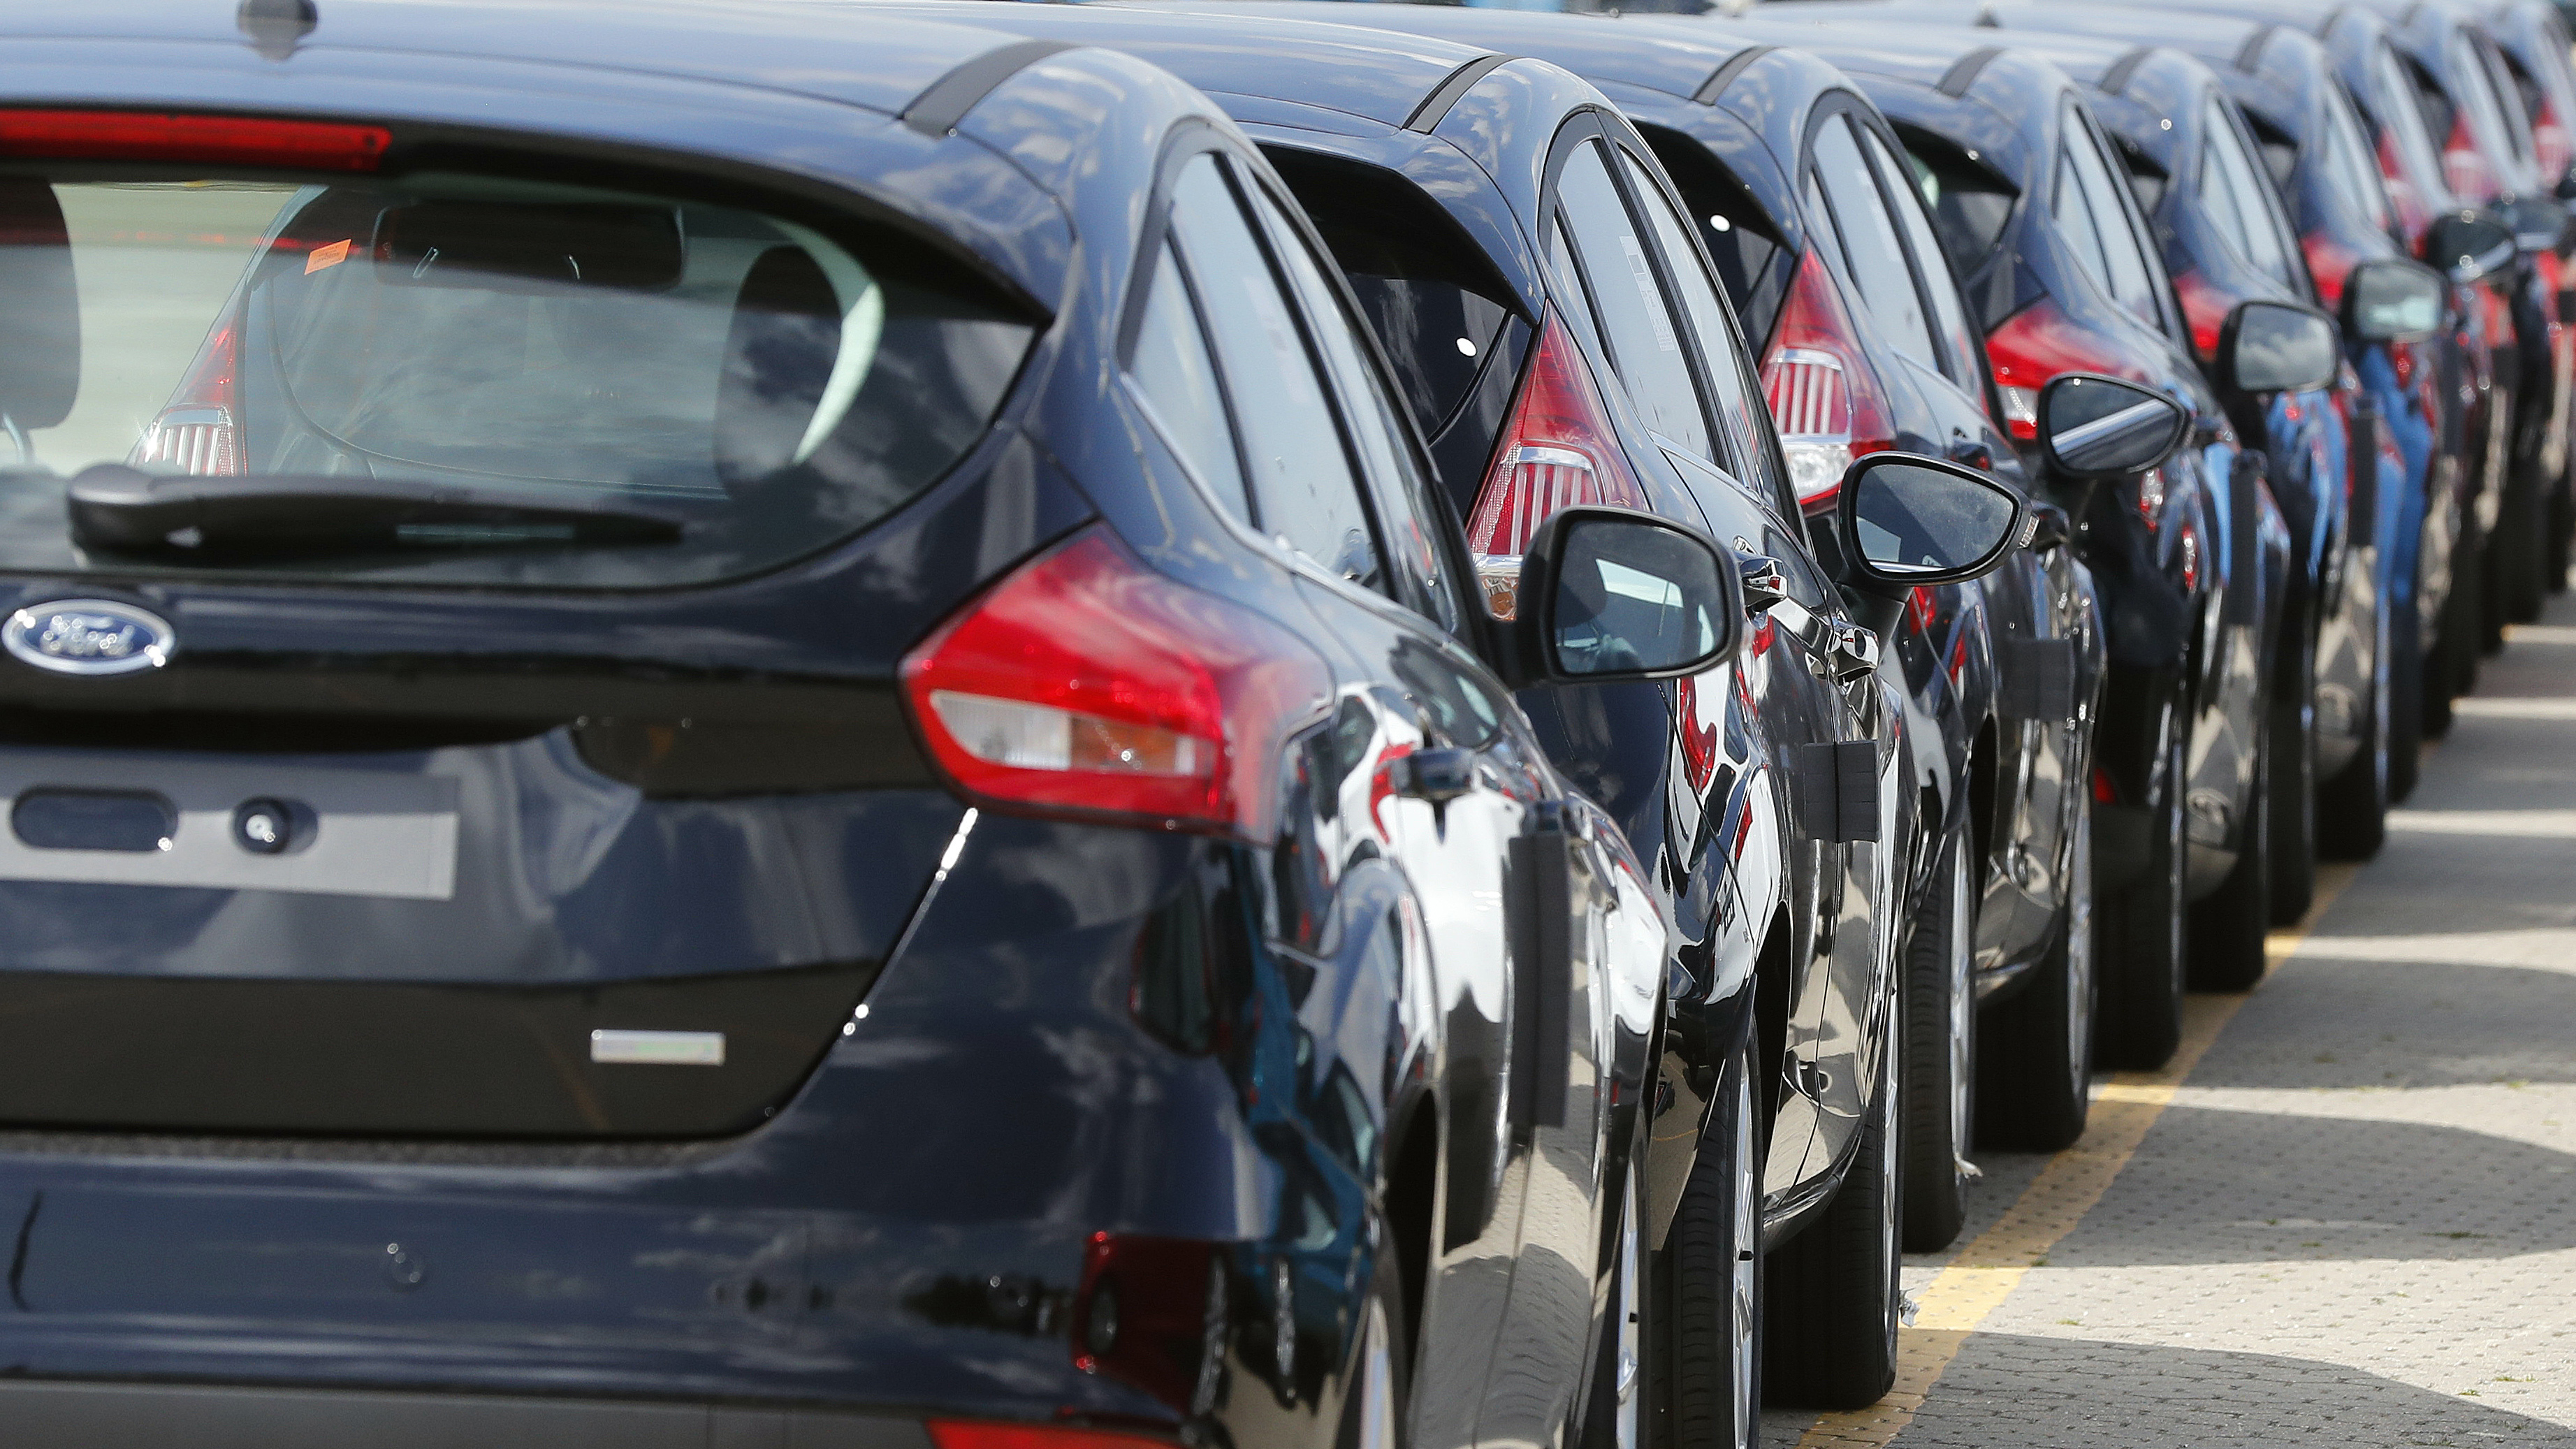 *Ford cars wait for deployment after arrival by ship at the Ford Dagenham diesel engine plant in London, Friday, July 21, 2017. Ford's Dagenham diesel engine plant is a marvel of mechanization _ a steel and chrome hangar full of LED lighting, robots and computer-controlled machine tools. The U.S. carmaker has invested $2.5 billion in the plant, where 3,150 people churn out an engine every 30 seconds.   (AP Photo/Frank Augstein)